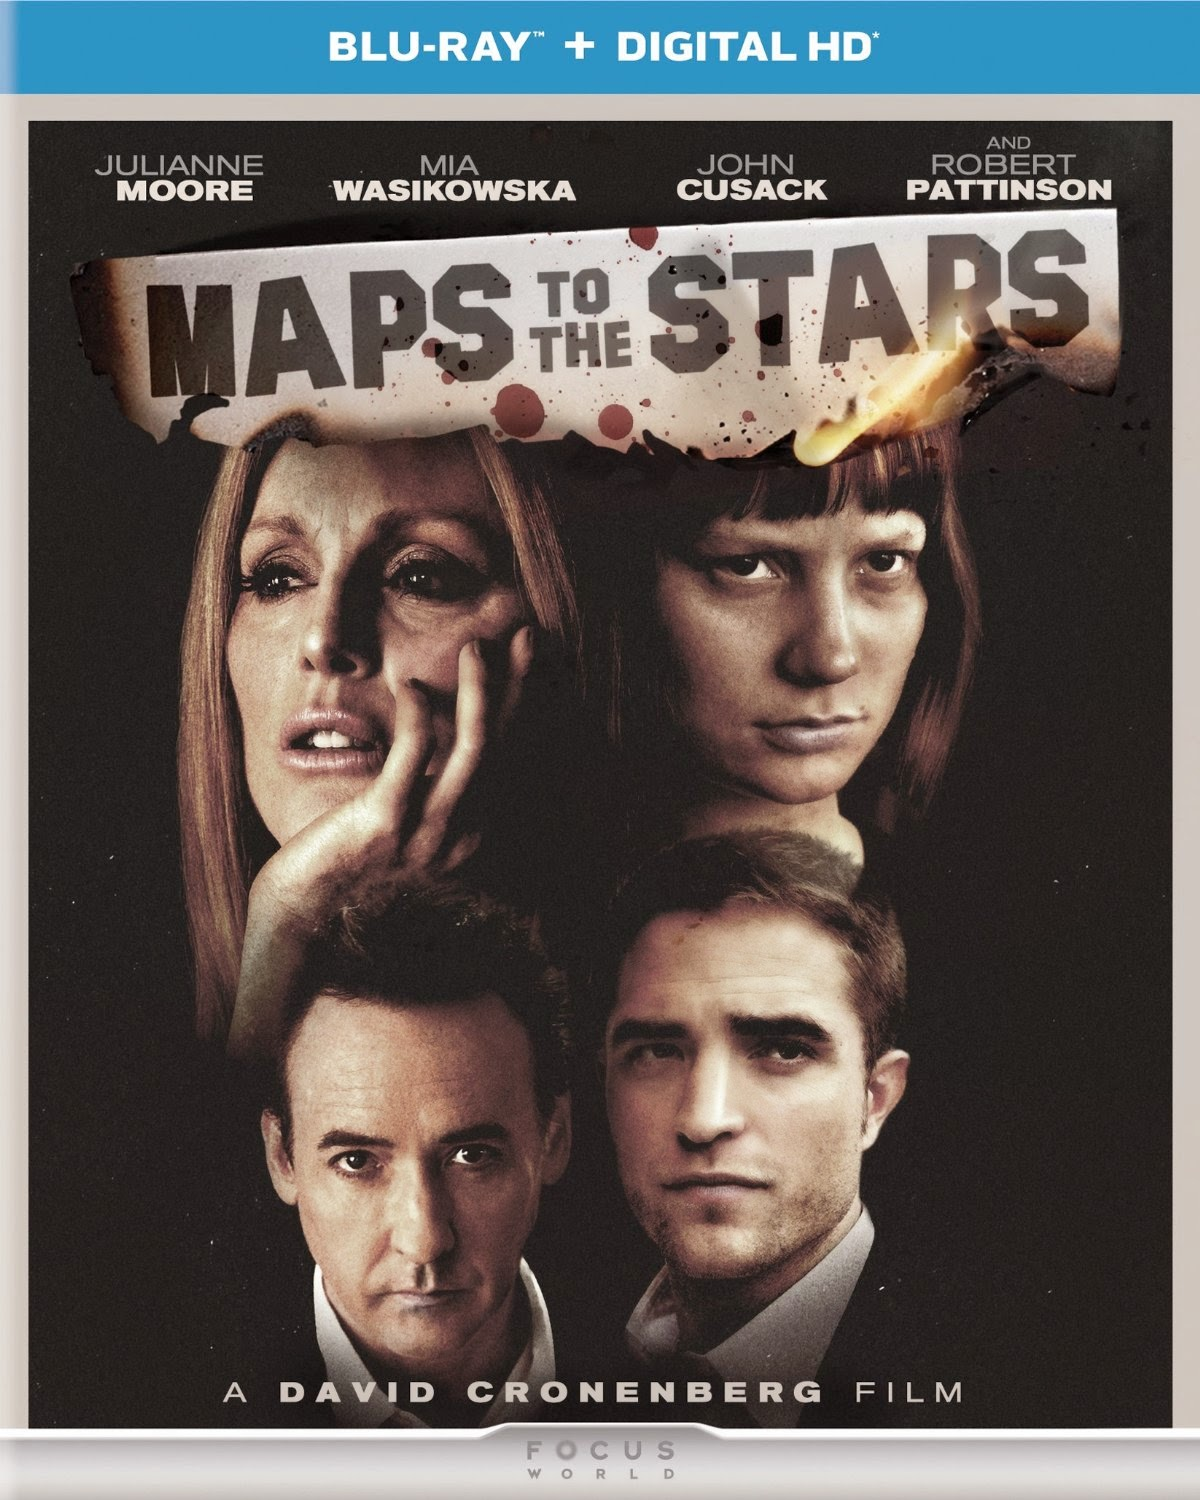 http://www.amazon.com/Maps-Stars-Blu-ray-DIGITAL-HD/dp/B00T5DYSHE/ref=sr_1_2_twi_1_blu?s=movies-tv&ie=UTF8&qid=1429100046&sr=1-2&keywords=maps+to+the+stars